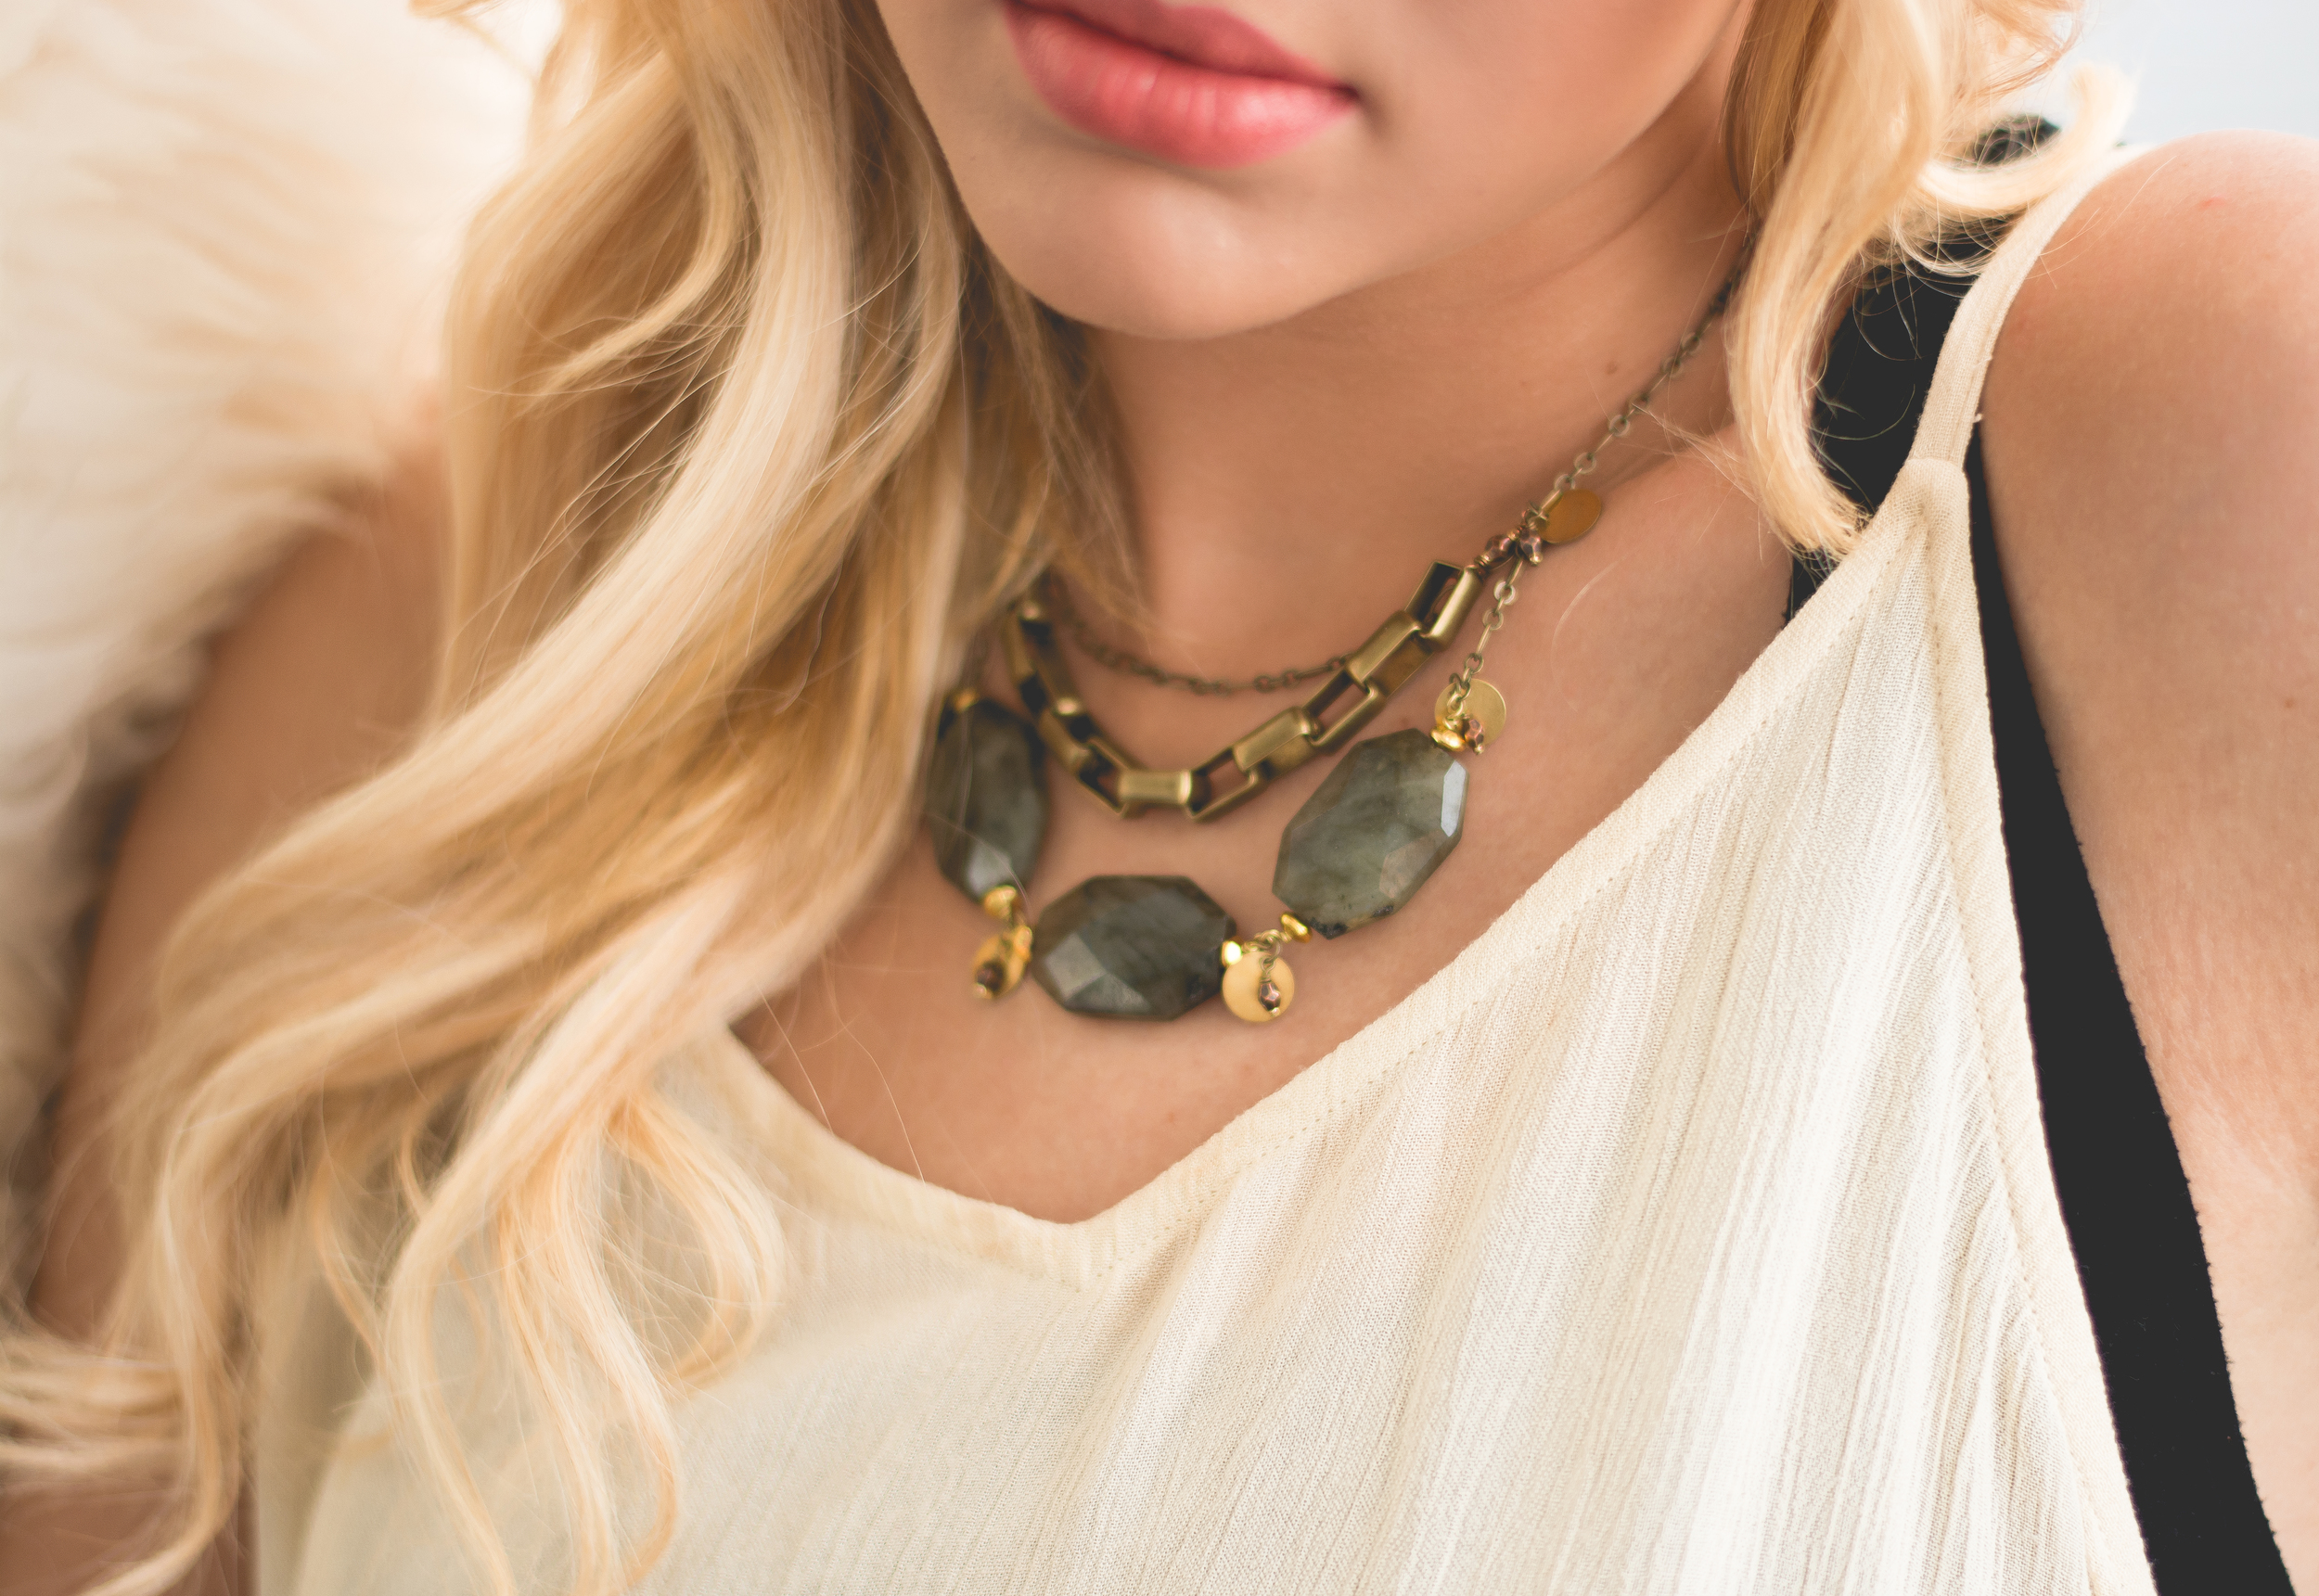 The Marvelous Light bib necklace is a great addition to your Easter outfit!